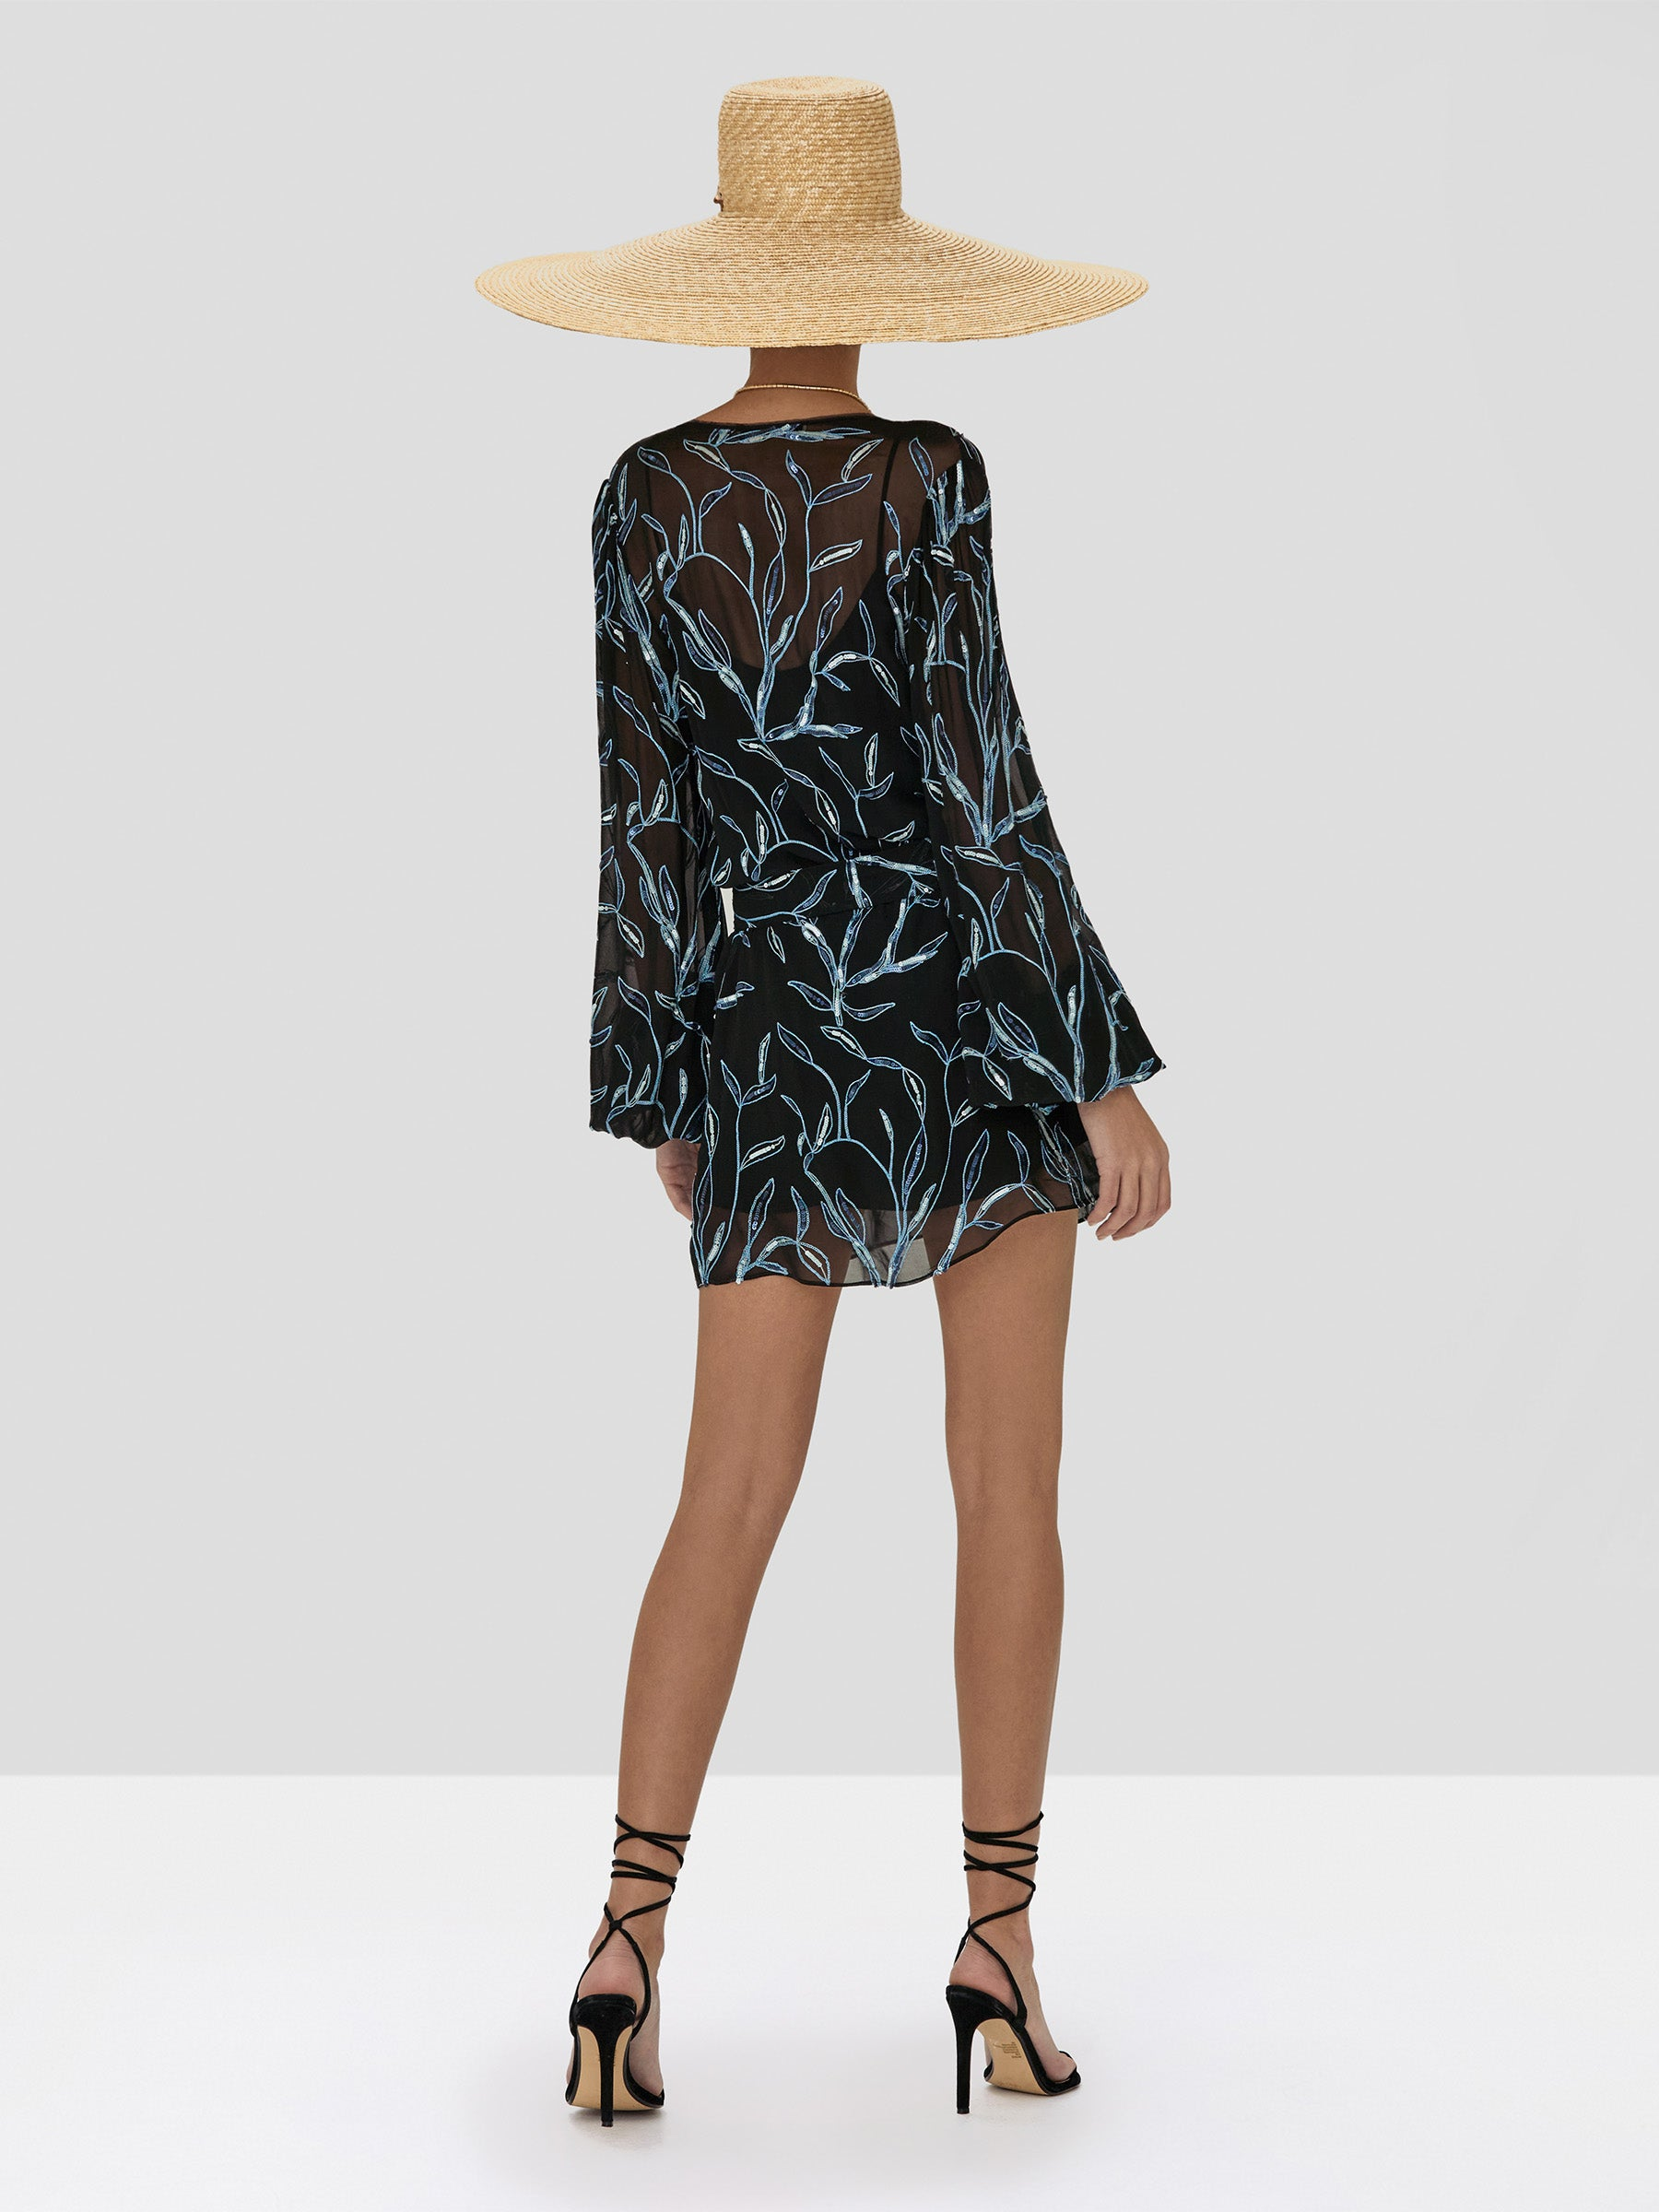 Alexis Lujana Dress in Black Sequin Embroidery from the Spring Summer 2020 Collection - Rear View